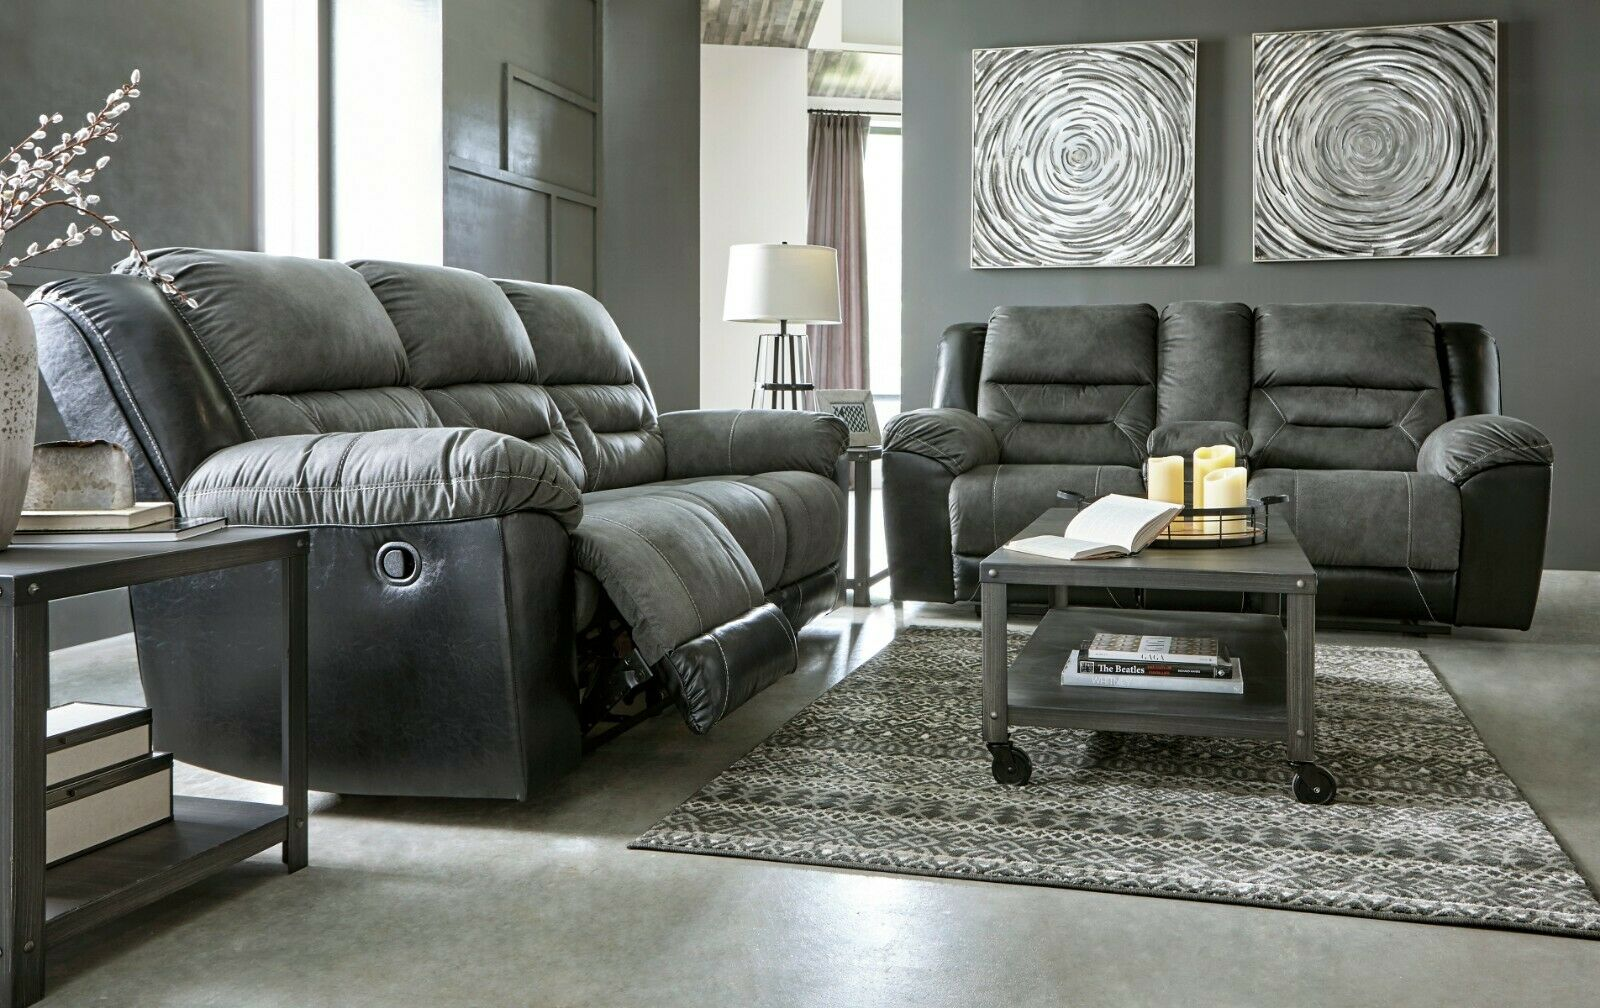 Ashley Furniture Yancy Leather Reclining Sofa And Loveseat 2920288 For Sale Online Ebay